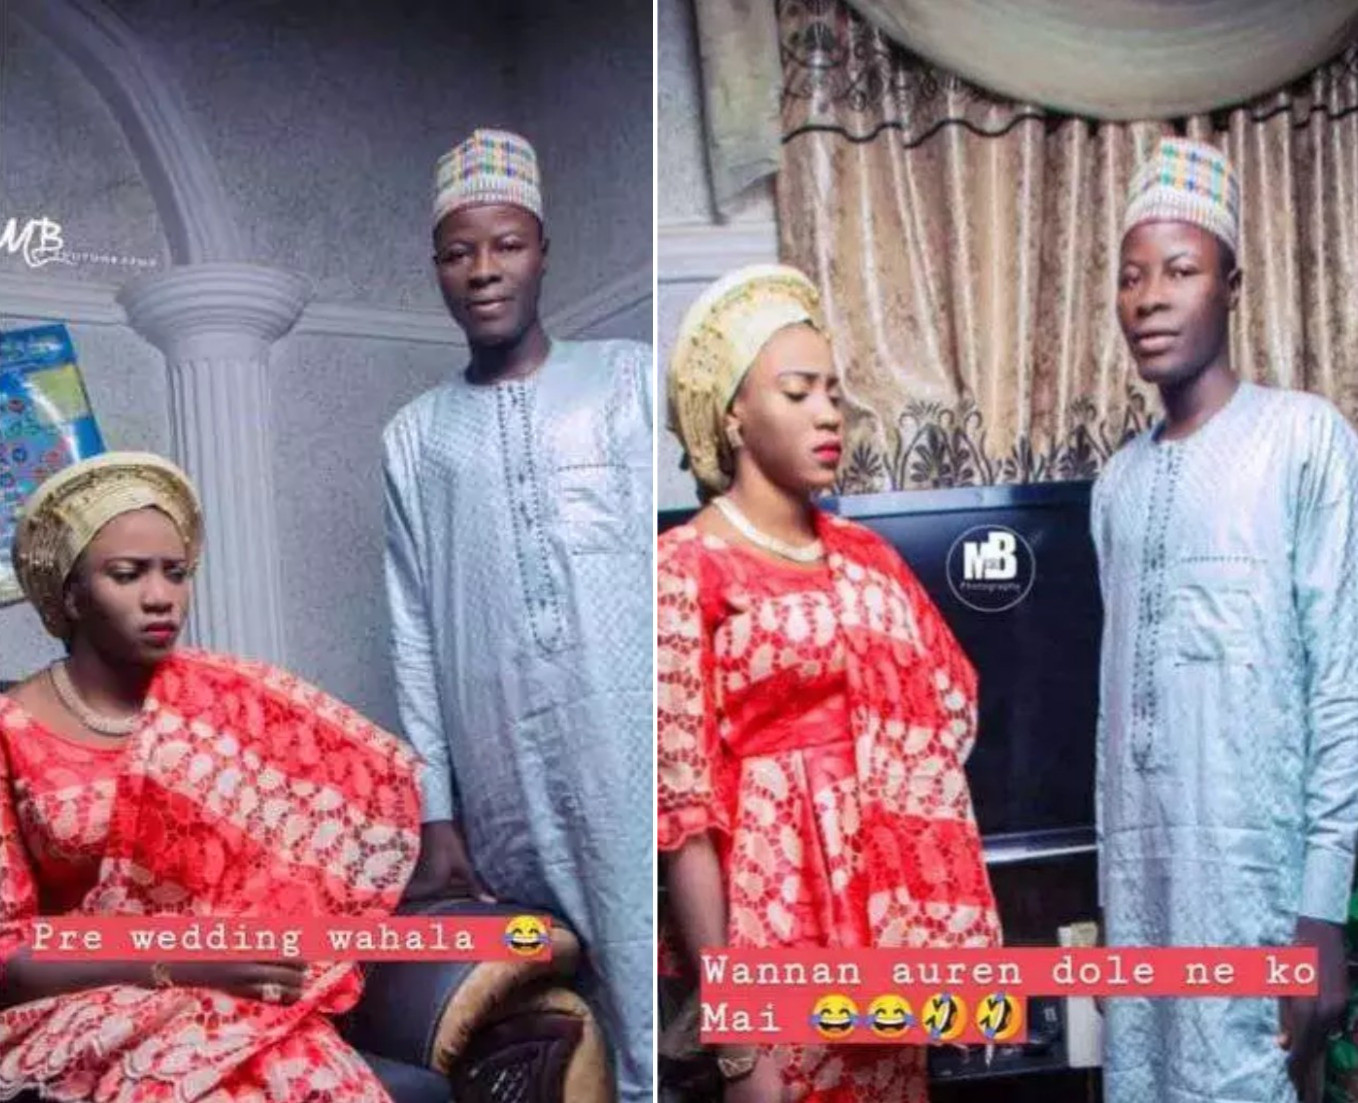 Viral Photos Of Beautiful Bride Looking Very Angry In Her Pre-Wedding Pictures 1